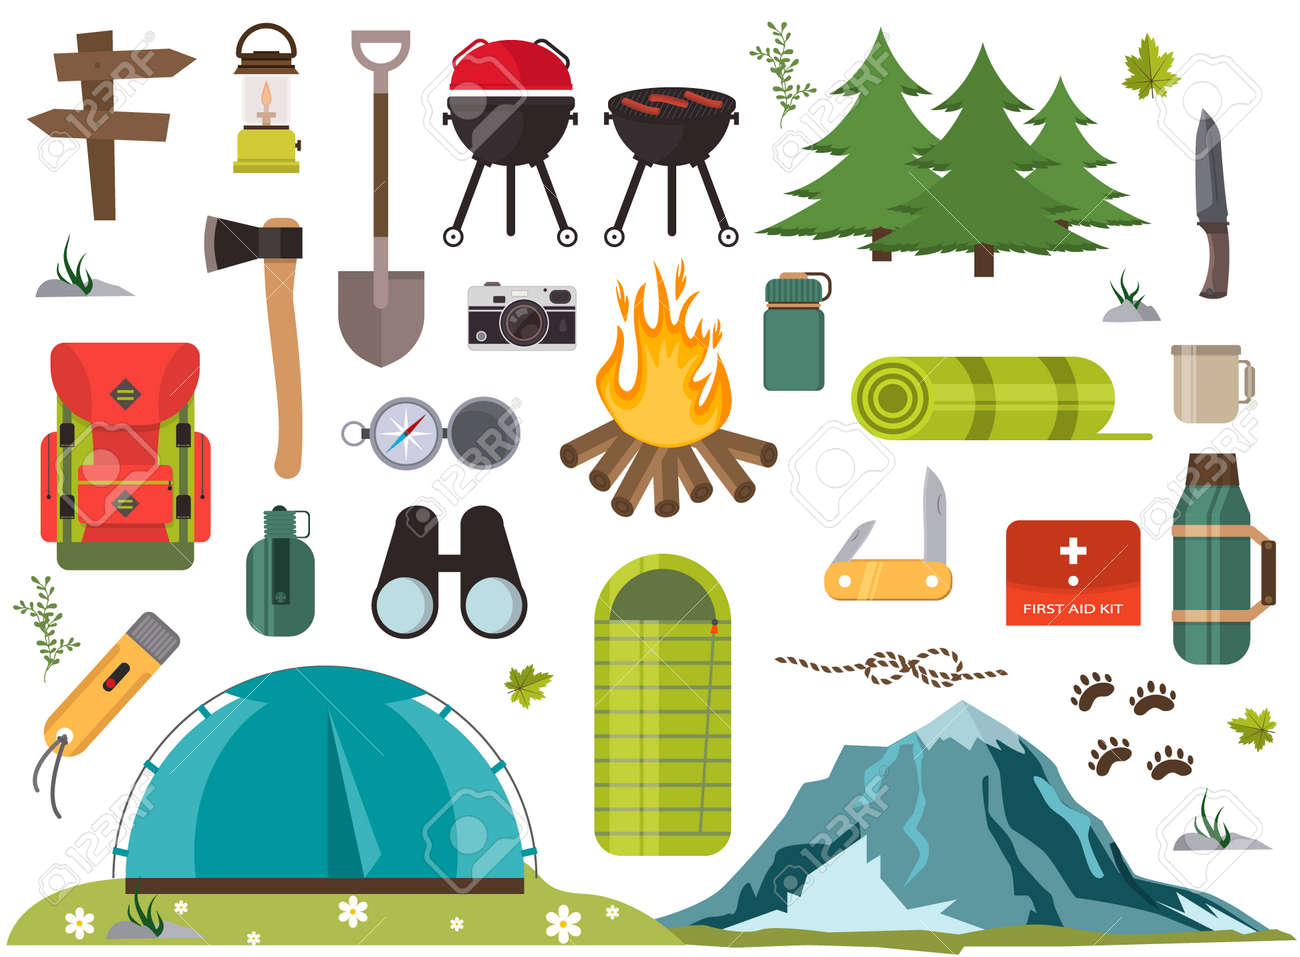 wholesale dealer dbfae 2e5a6 Hiking camping equipment vector campfire base camp gear and accessories..